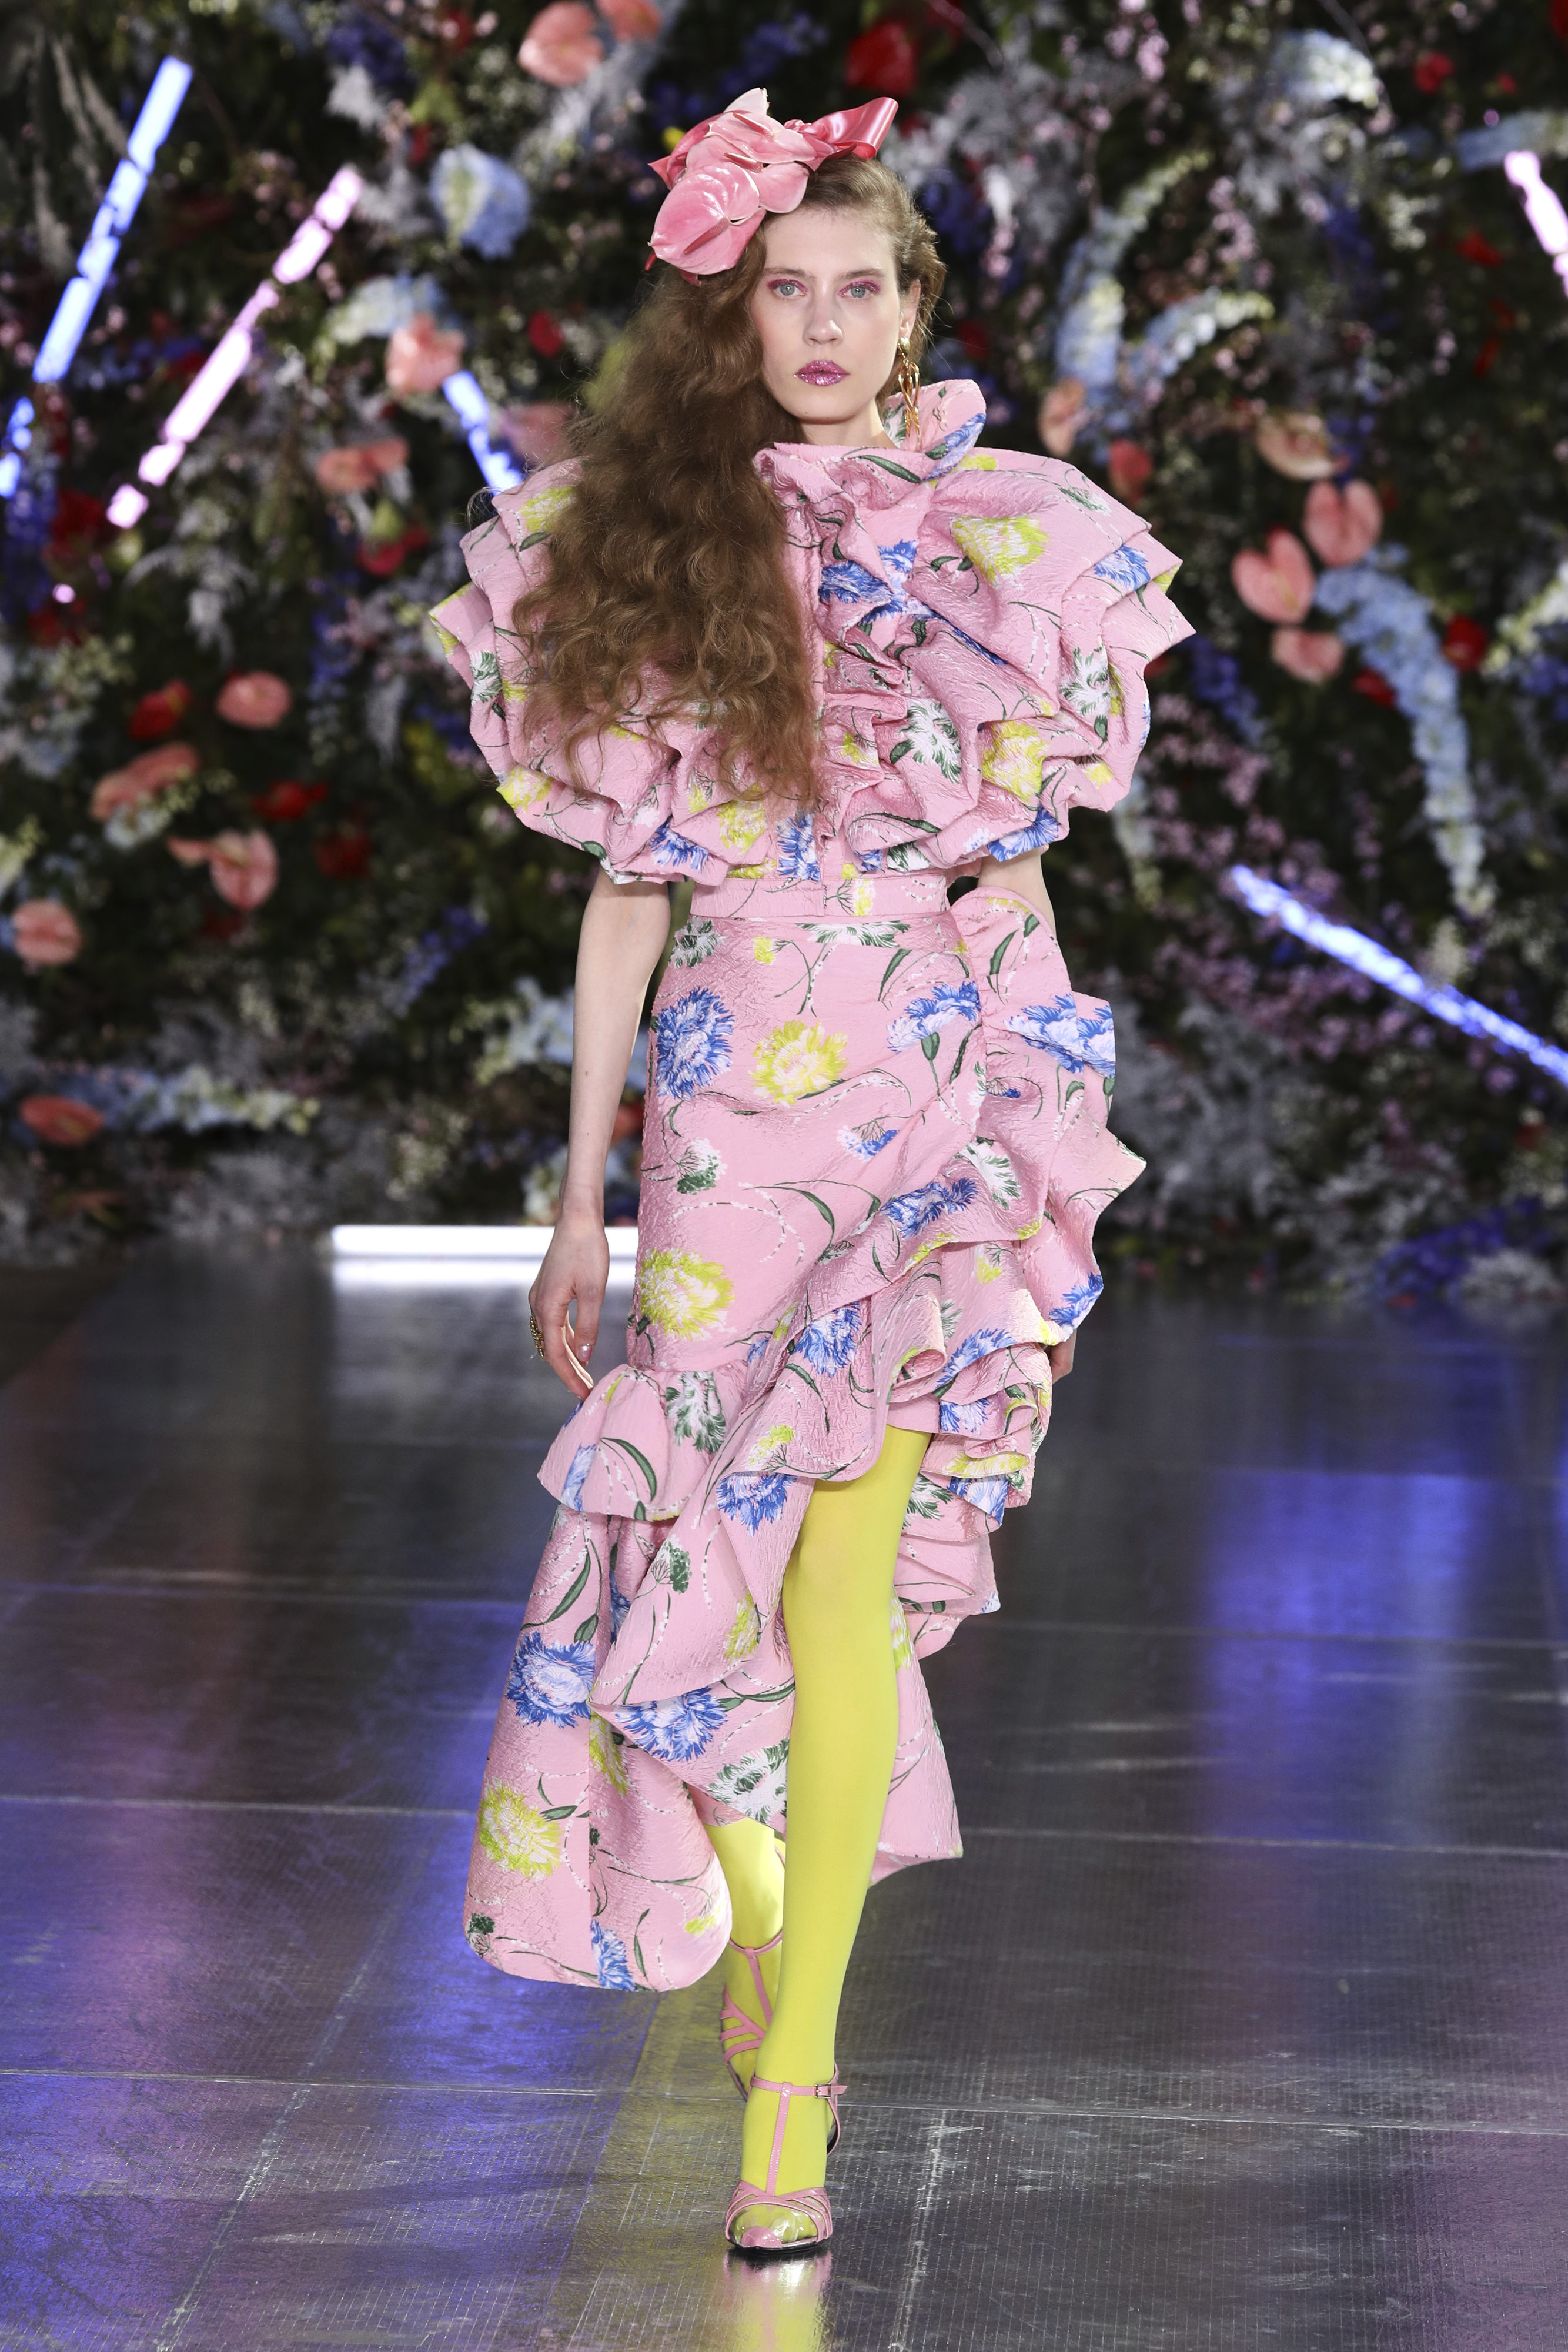 Top 10 'Other' Fashion Shows of the Fall 2019 Seasonows